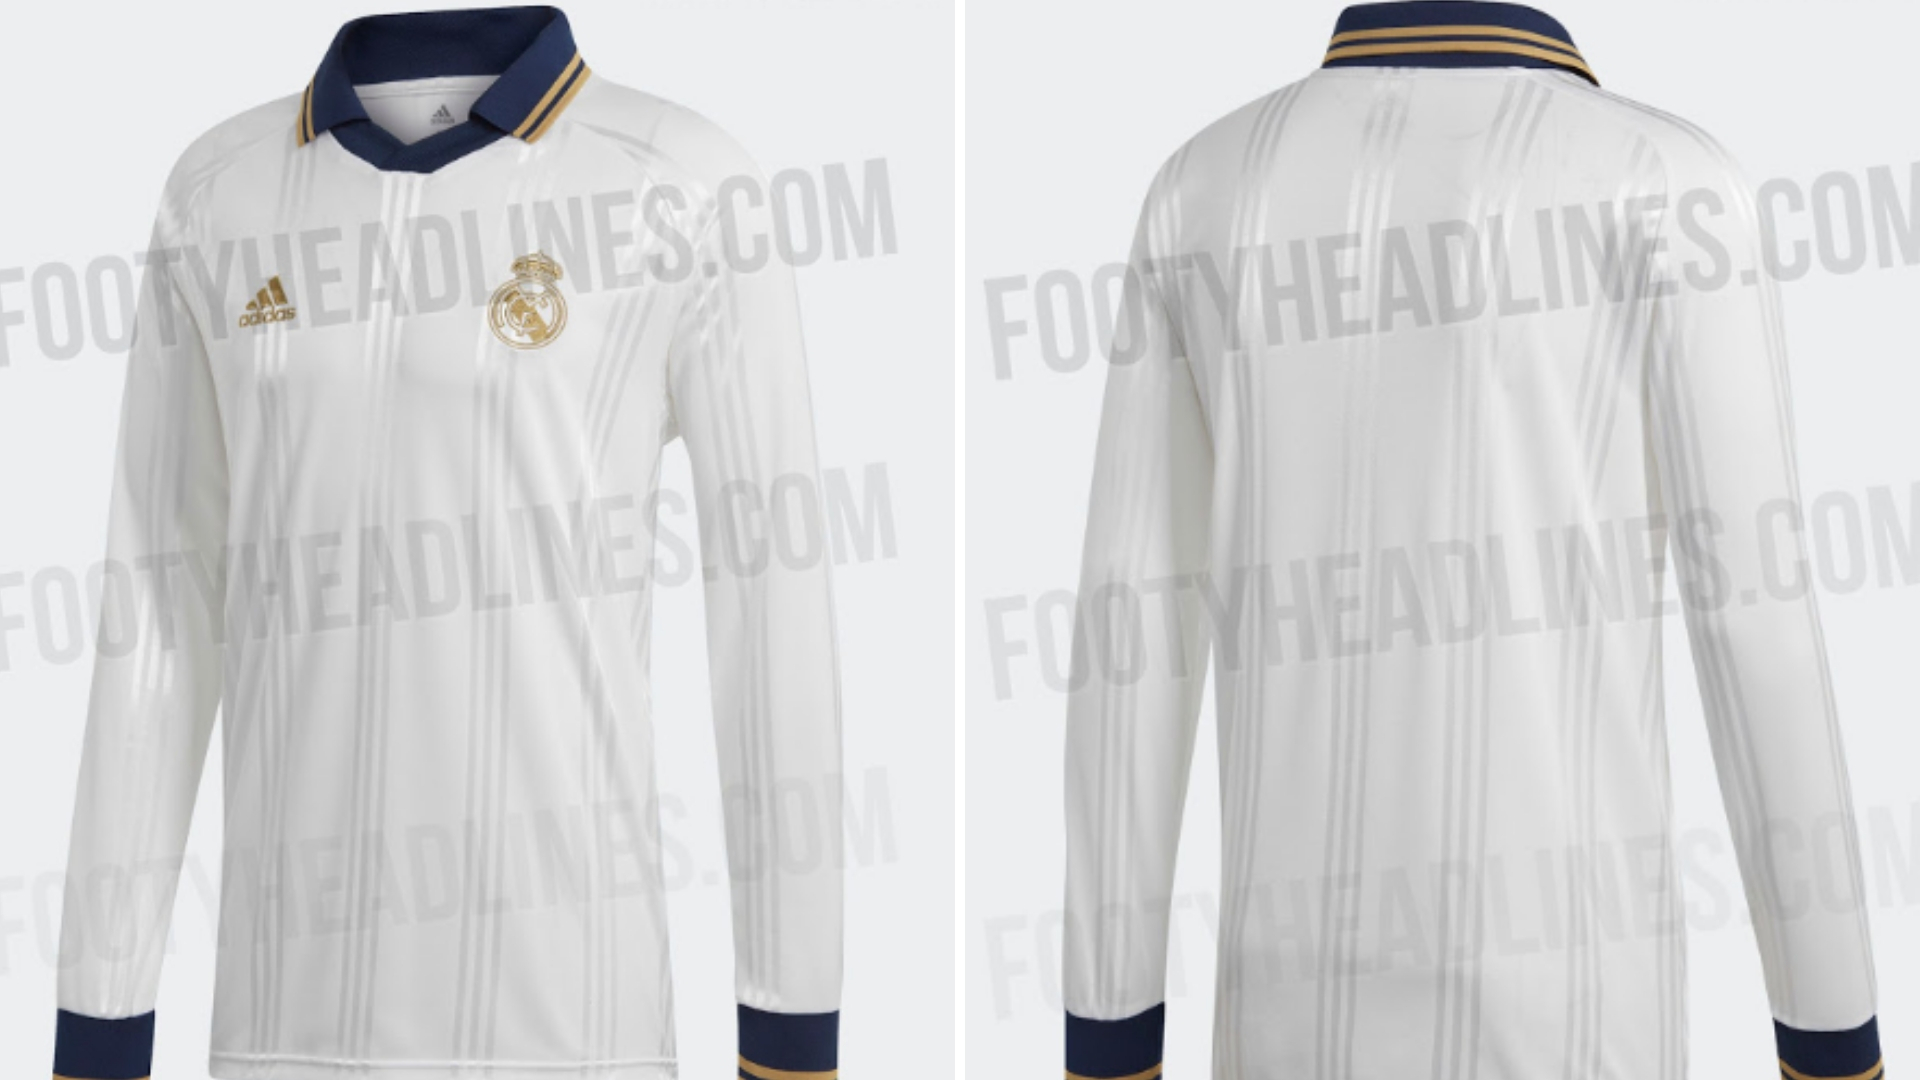 Indiferencia modo carencia  Adidas' Real Madrid 2019/20 Icon Retro Jersey Has Leaked Online - SPORTbible